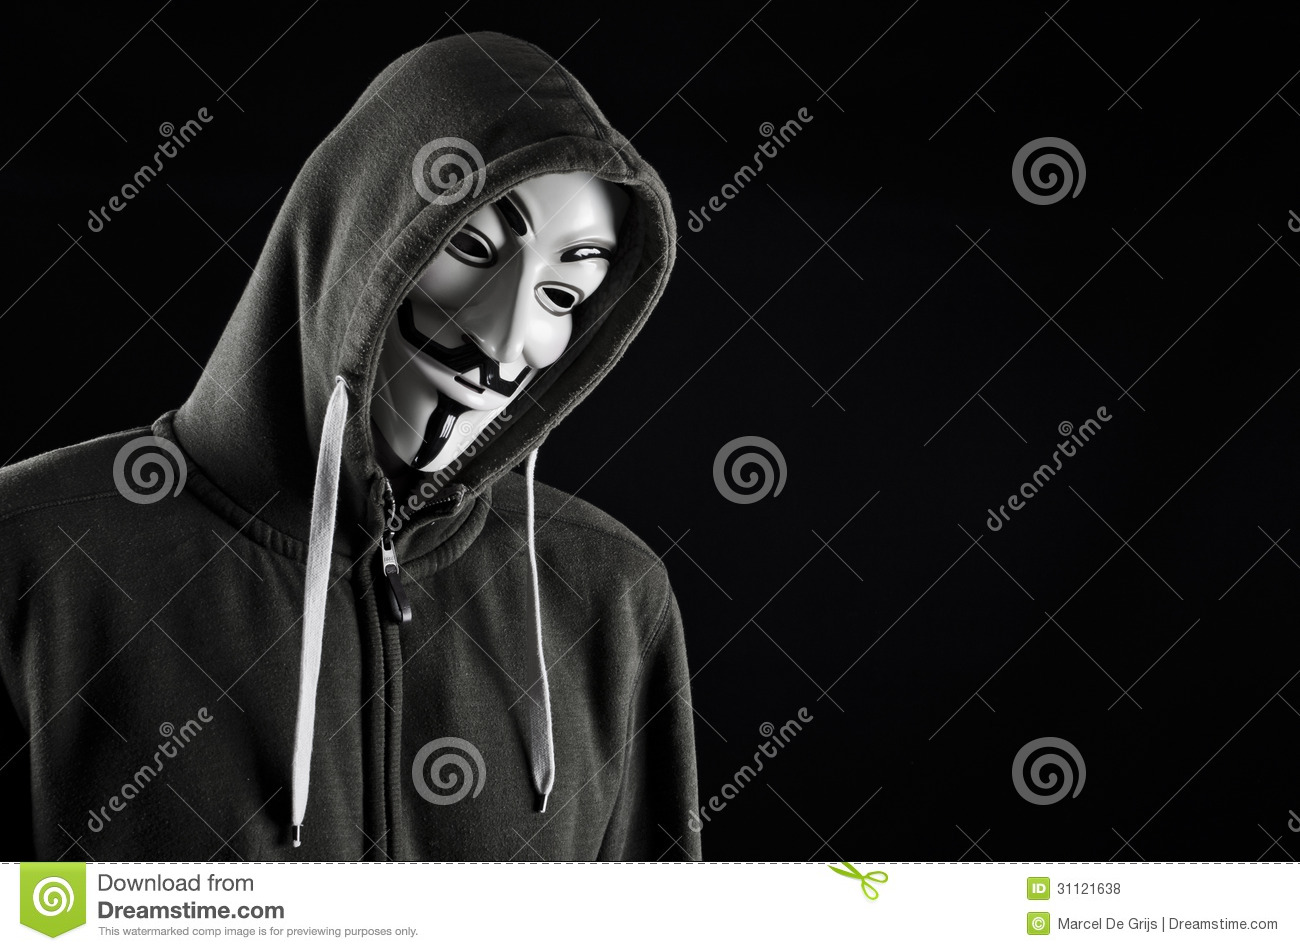 V For Vendetta Or Guy Fawkes Mask Editorial Stock Photo Image Of